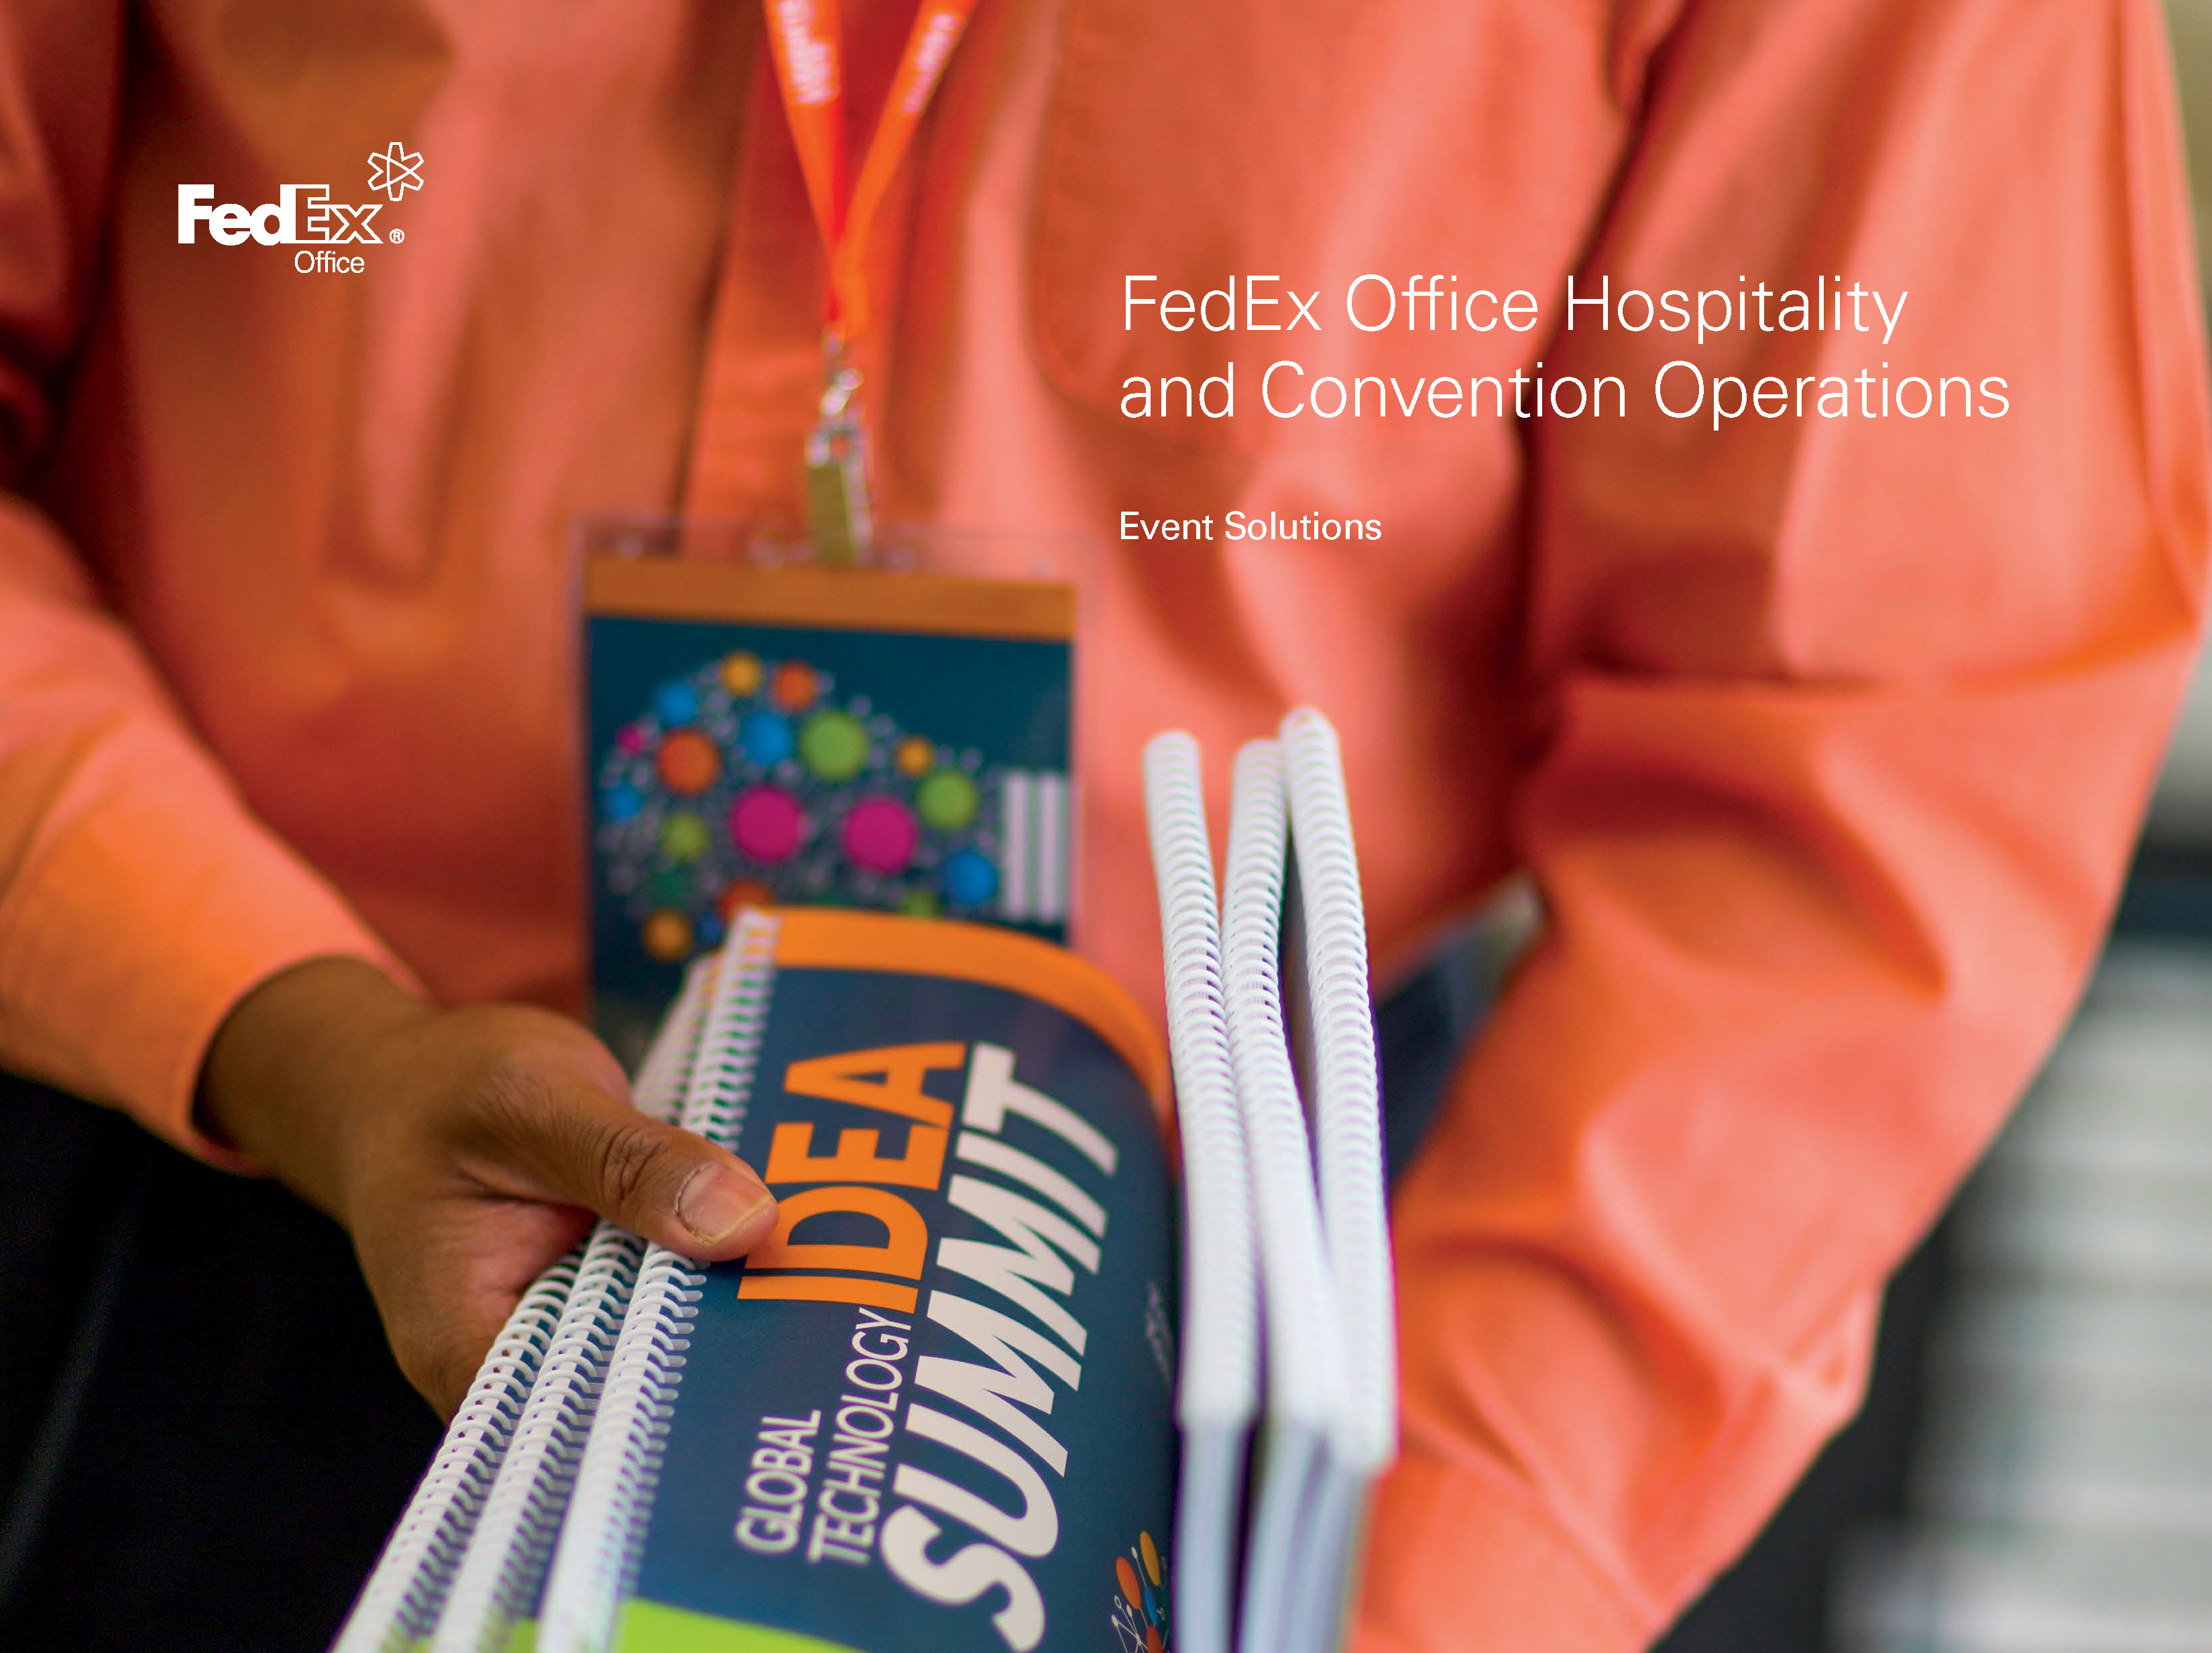 Download the FedEx Office Event Solutions Catalog